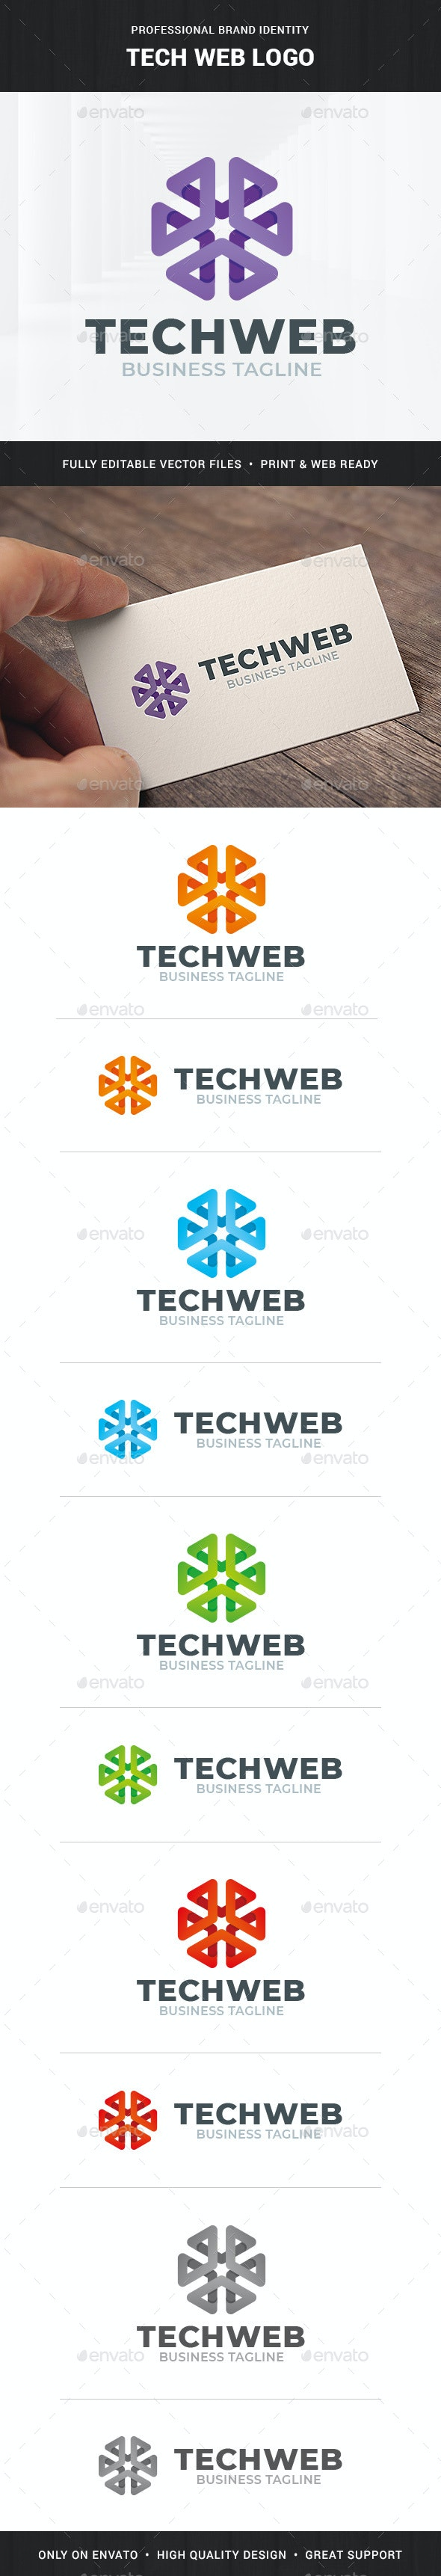 Tech Web Logo Template - 3d Abstract